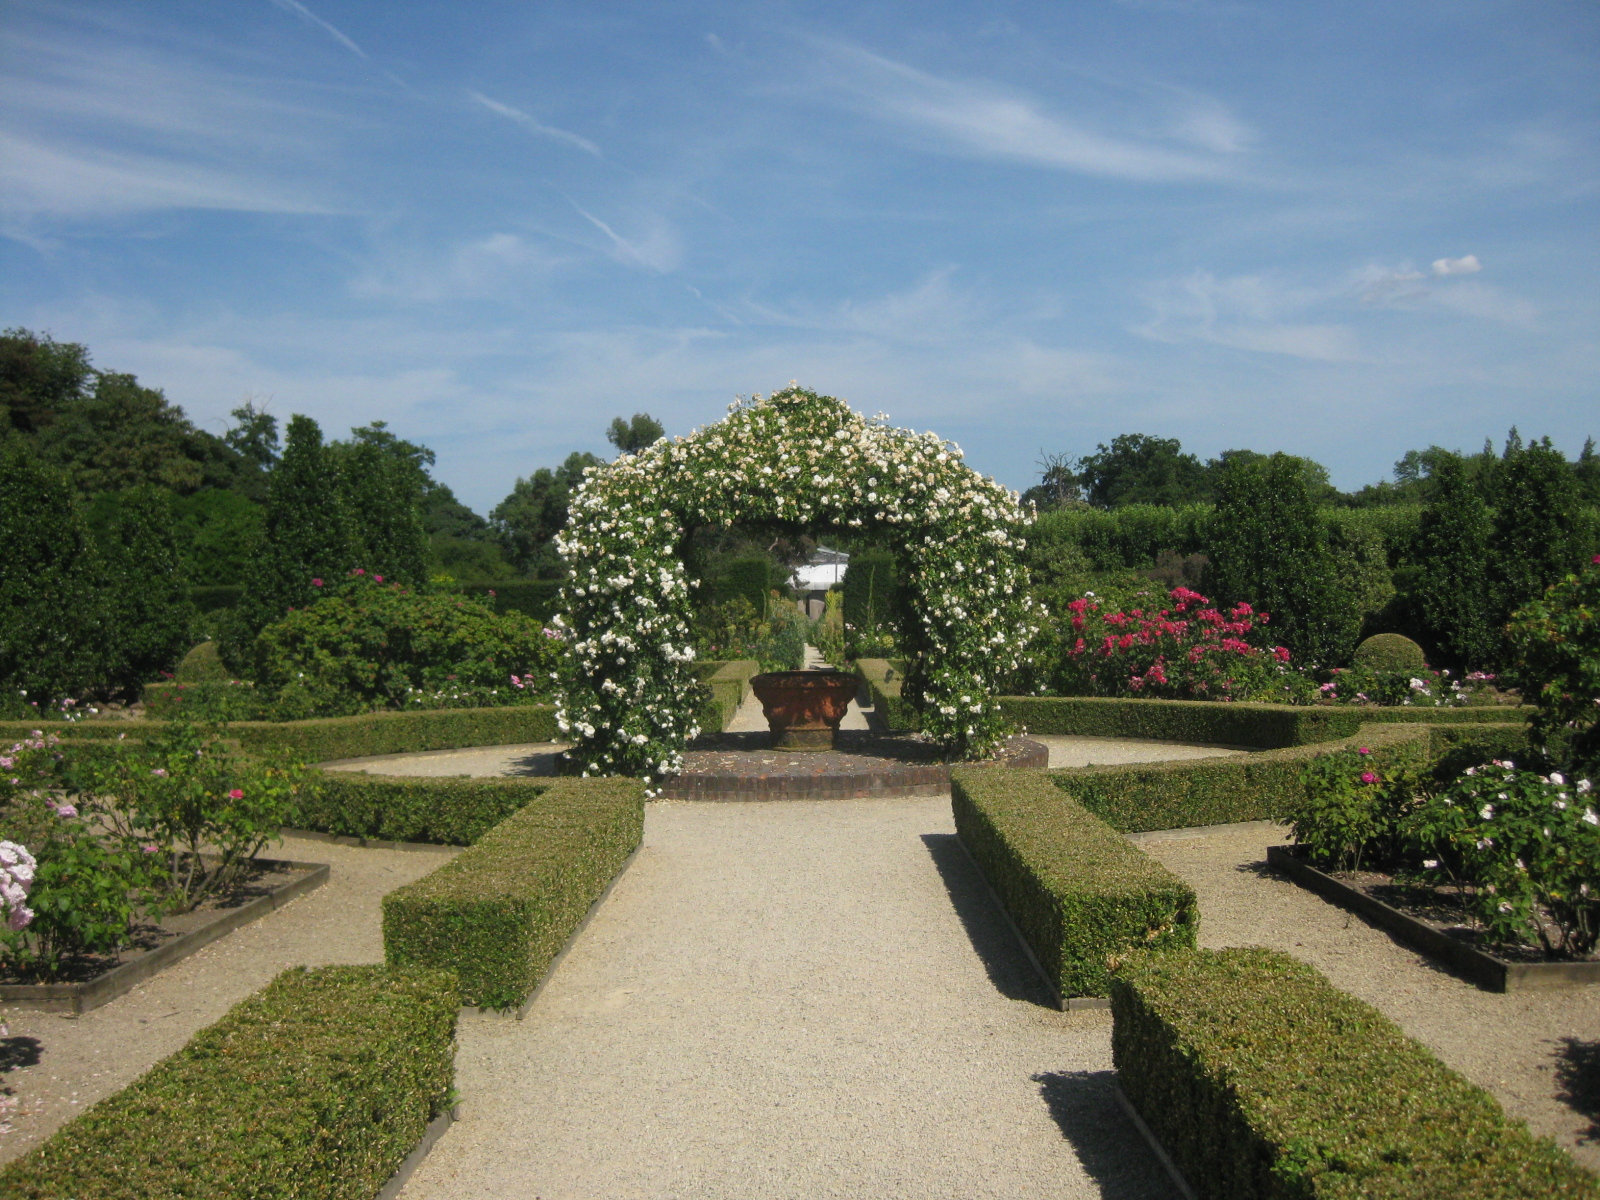 The Garden at Loseley Park